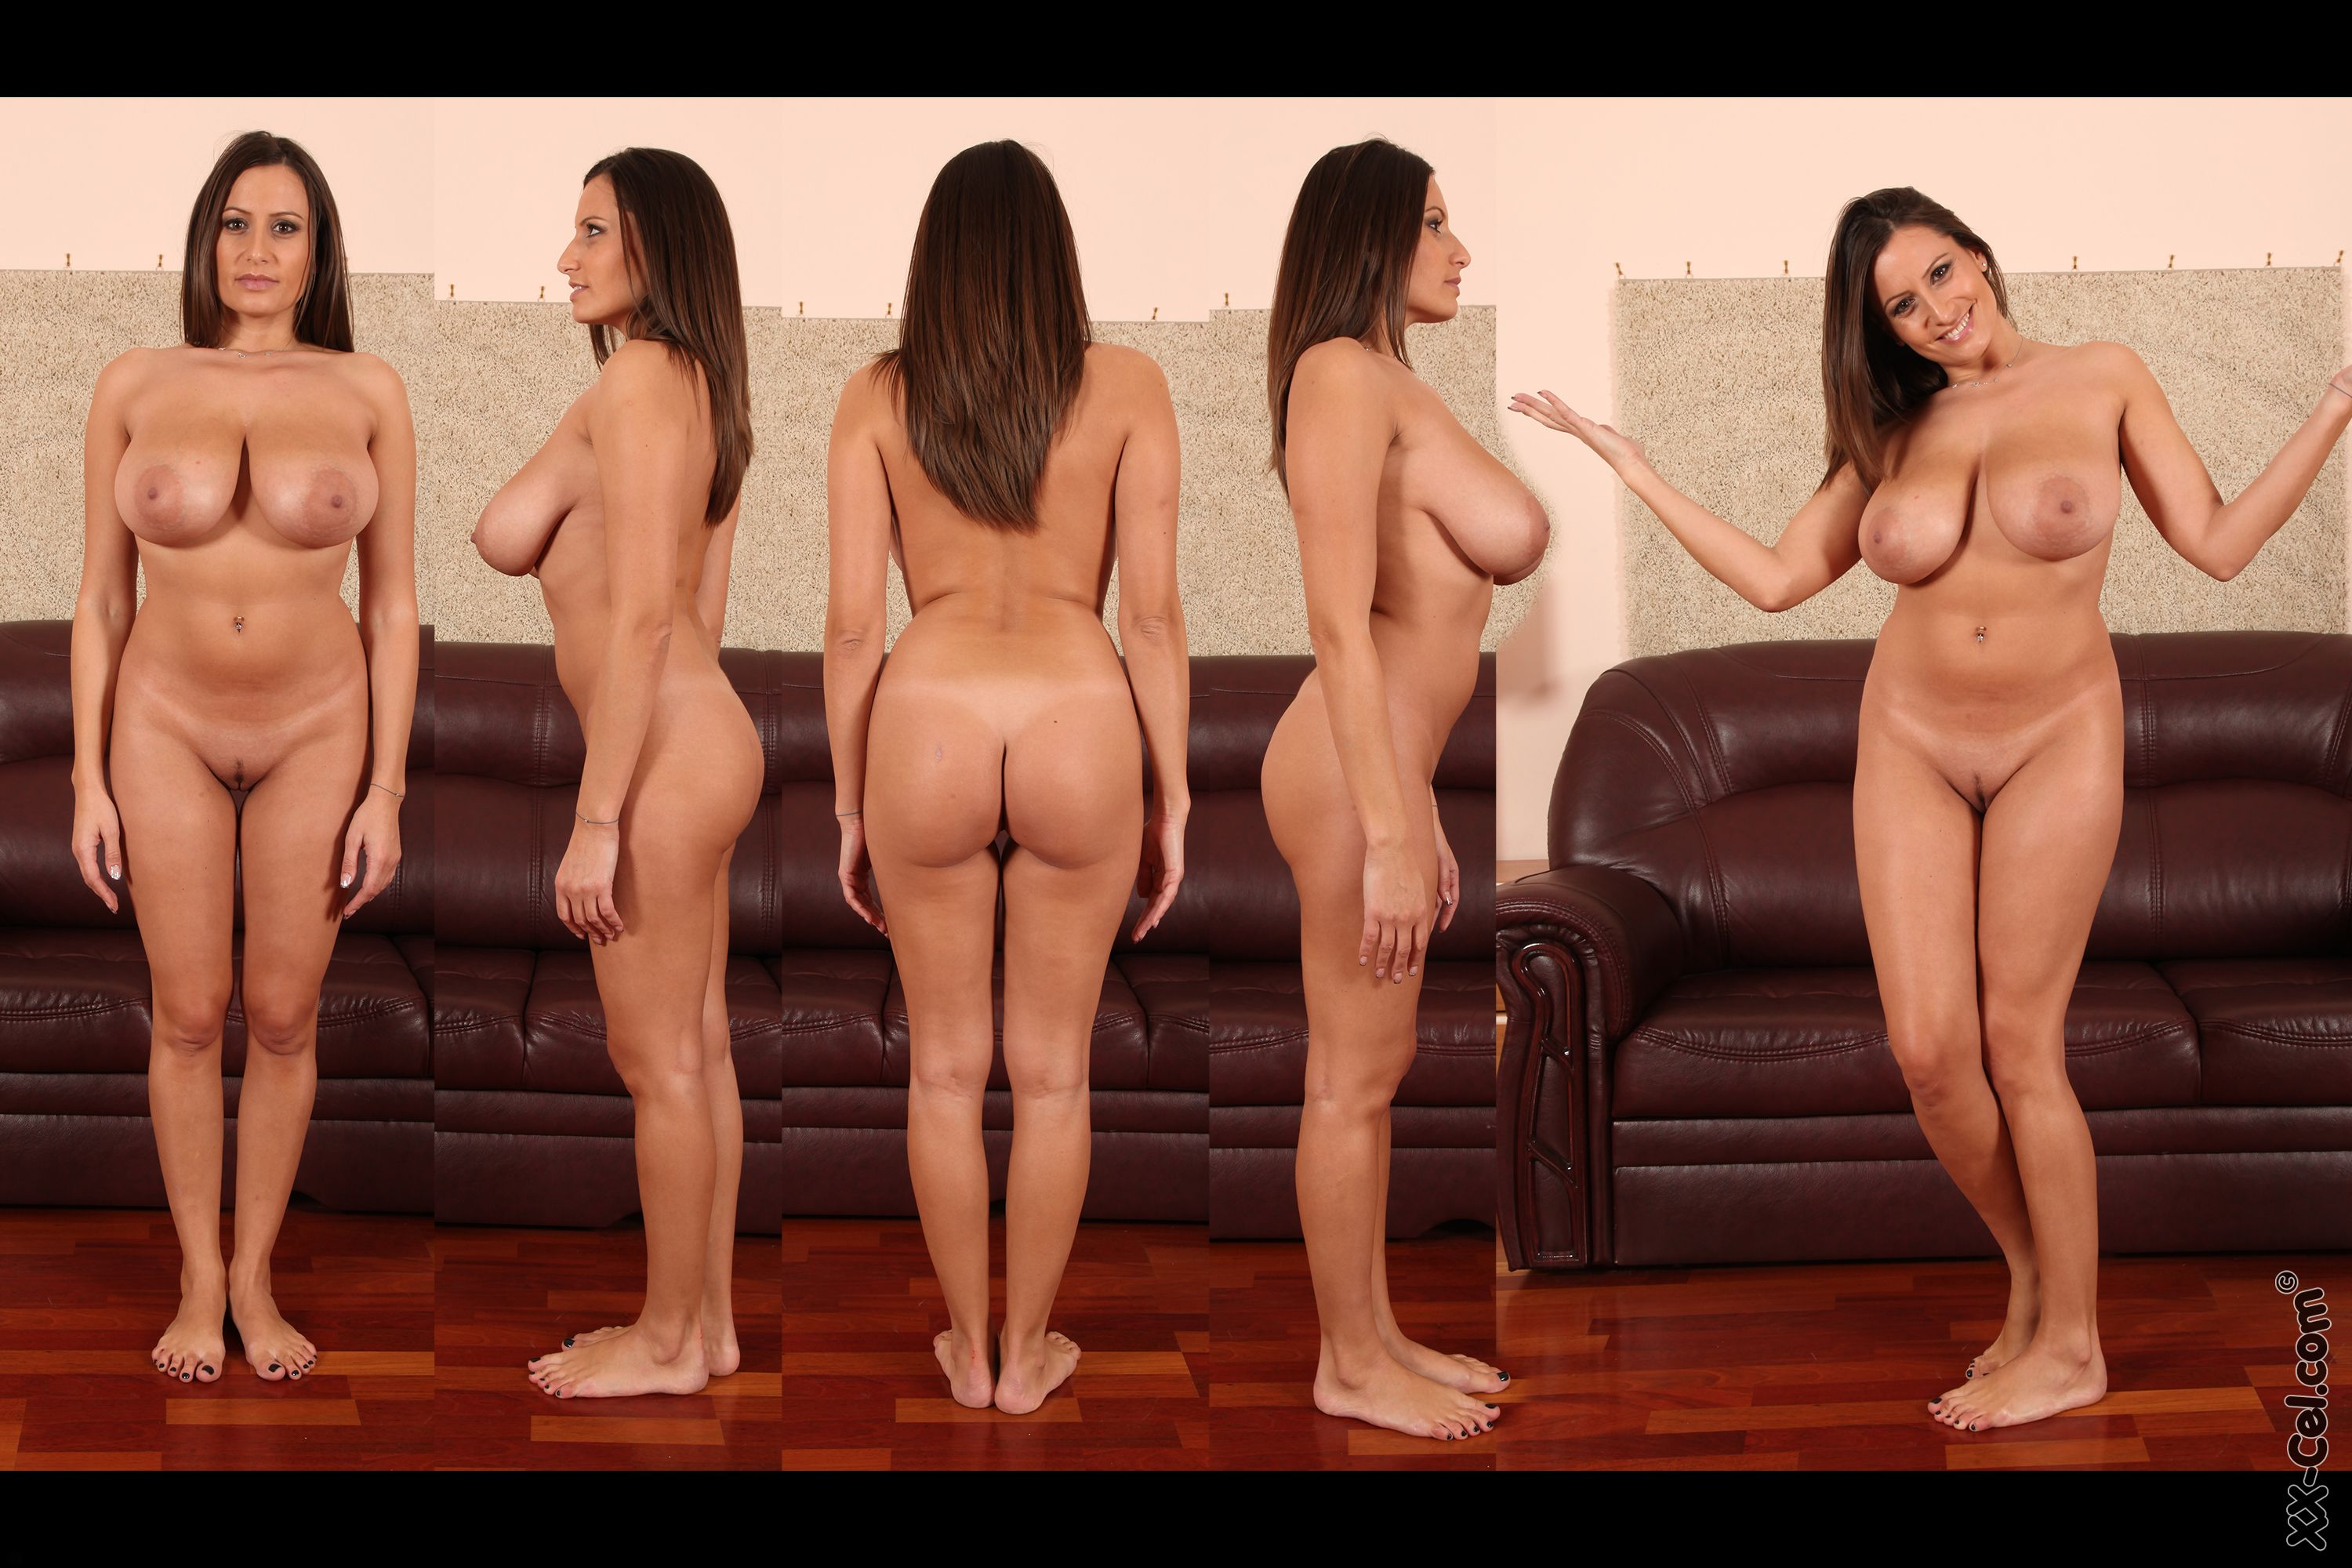 Sensual Jane Janelle Ionela Ioana Botezatu Romanian Bucharest Romania Europe G-cup 32G slim stacked big huge large breasts boobs tits knockers norks pussy fanny vagina twat cunt naked nude porn rude xx-cel